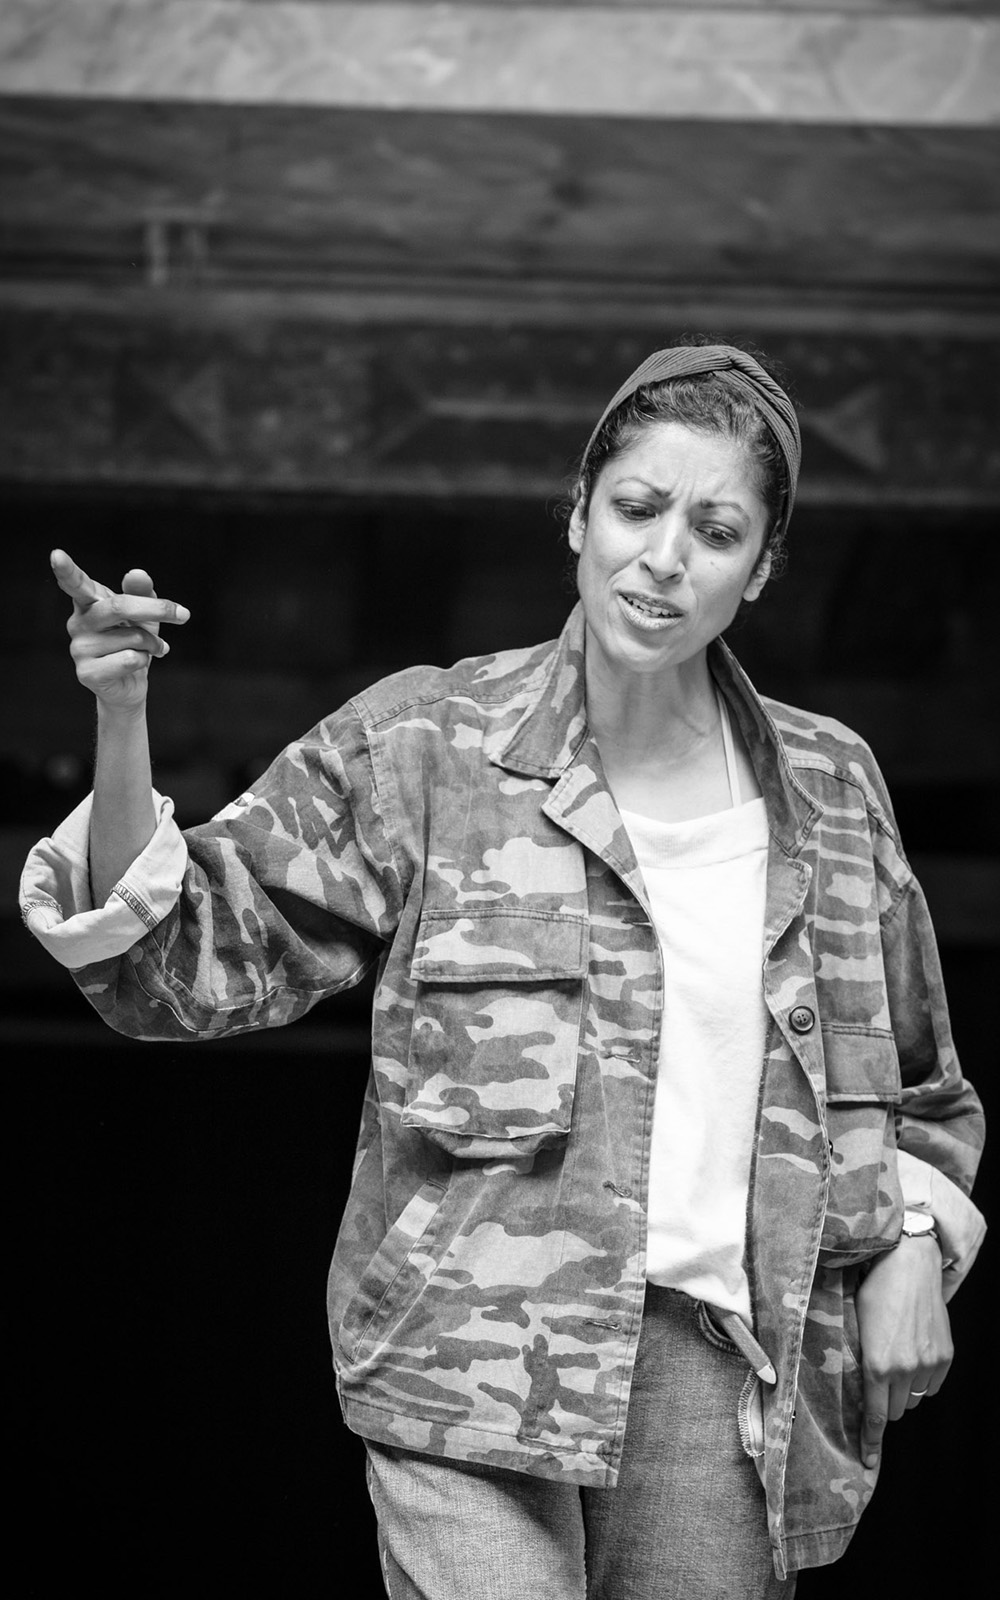 A woman wearing a green cargo jacket looks down disgruntled whilst pointing her finger out.